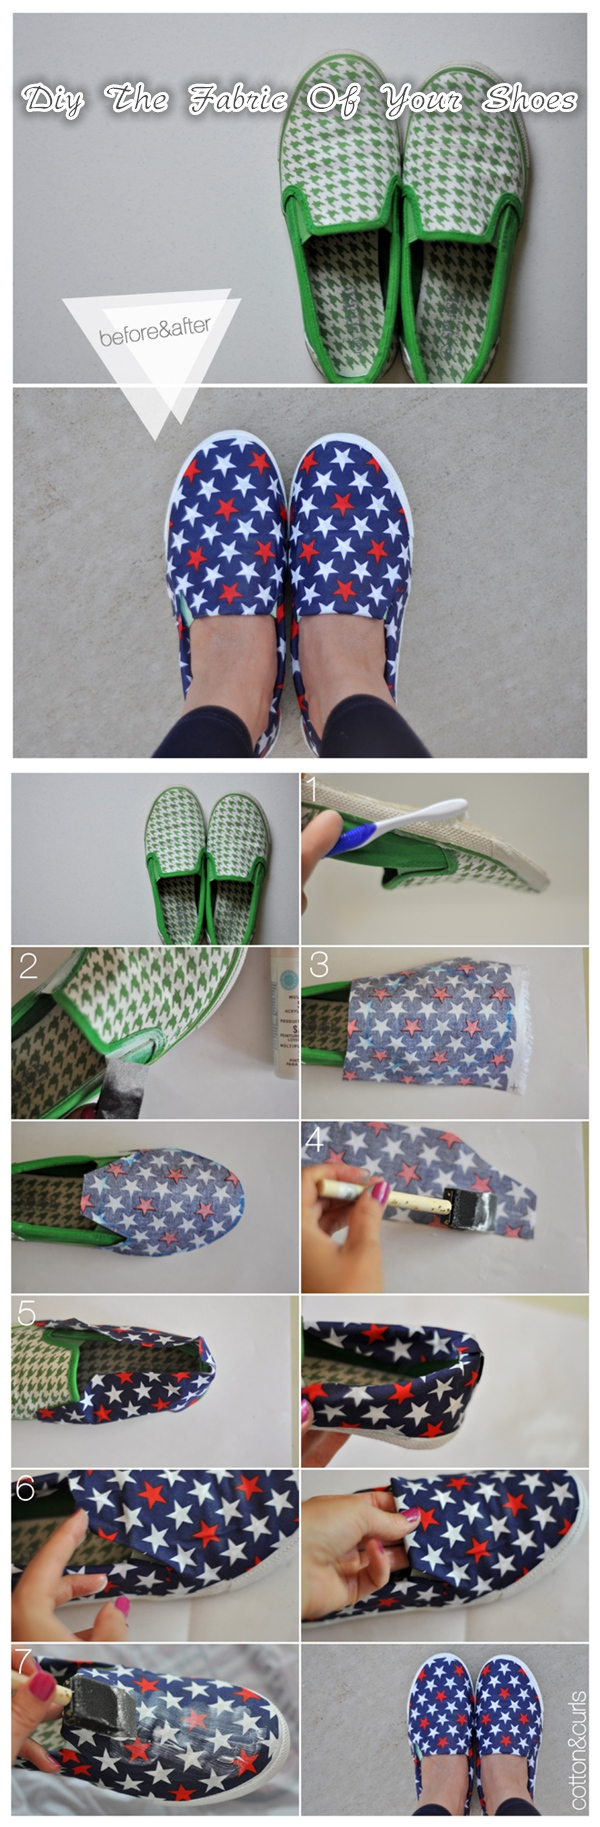 How To Diy The Fabric Of Your Shoes Tutorial